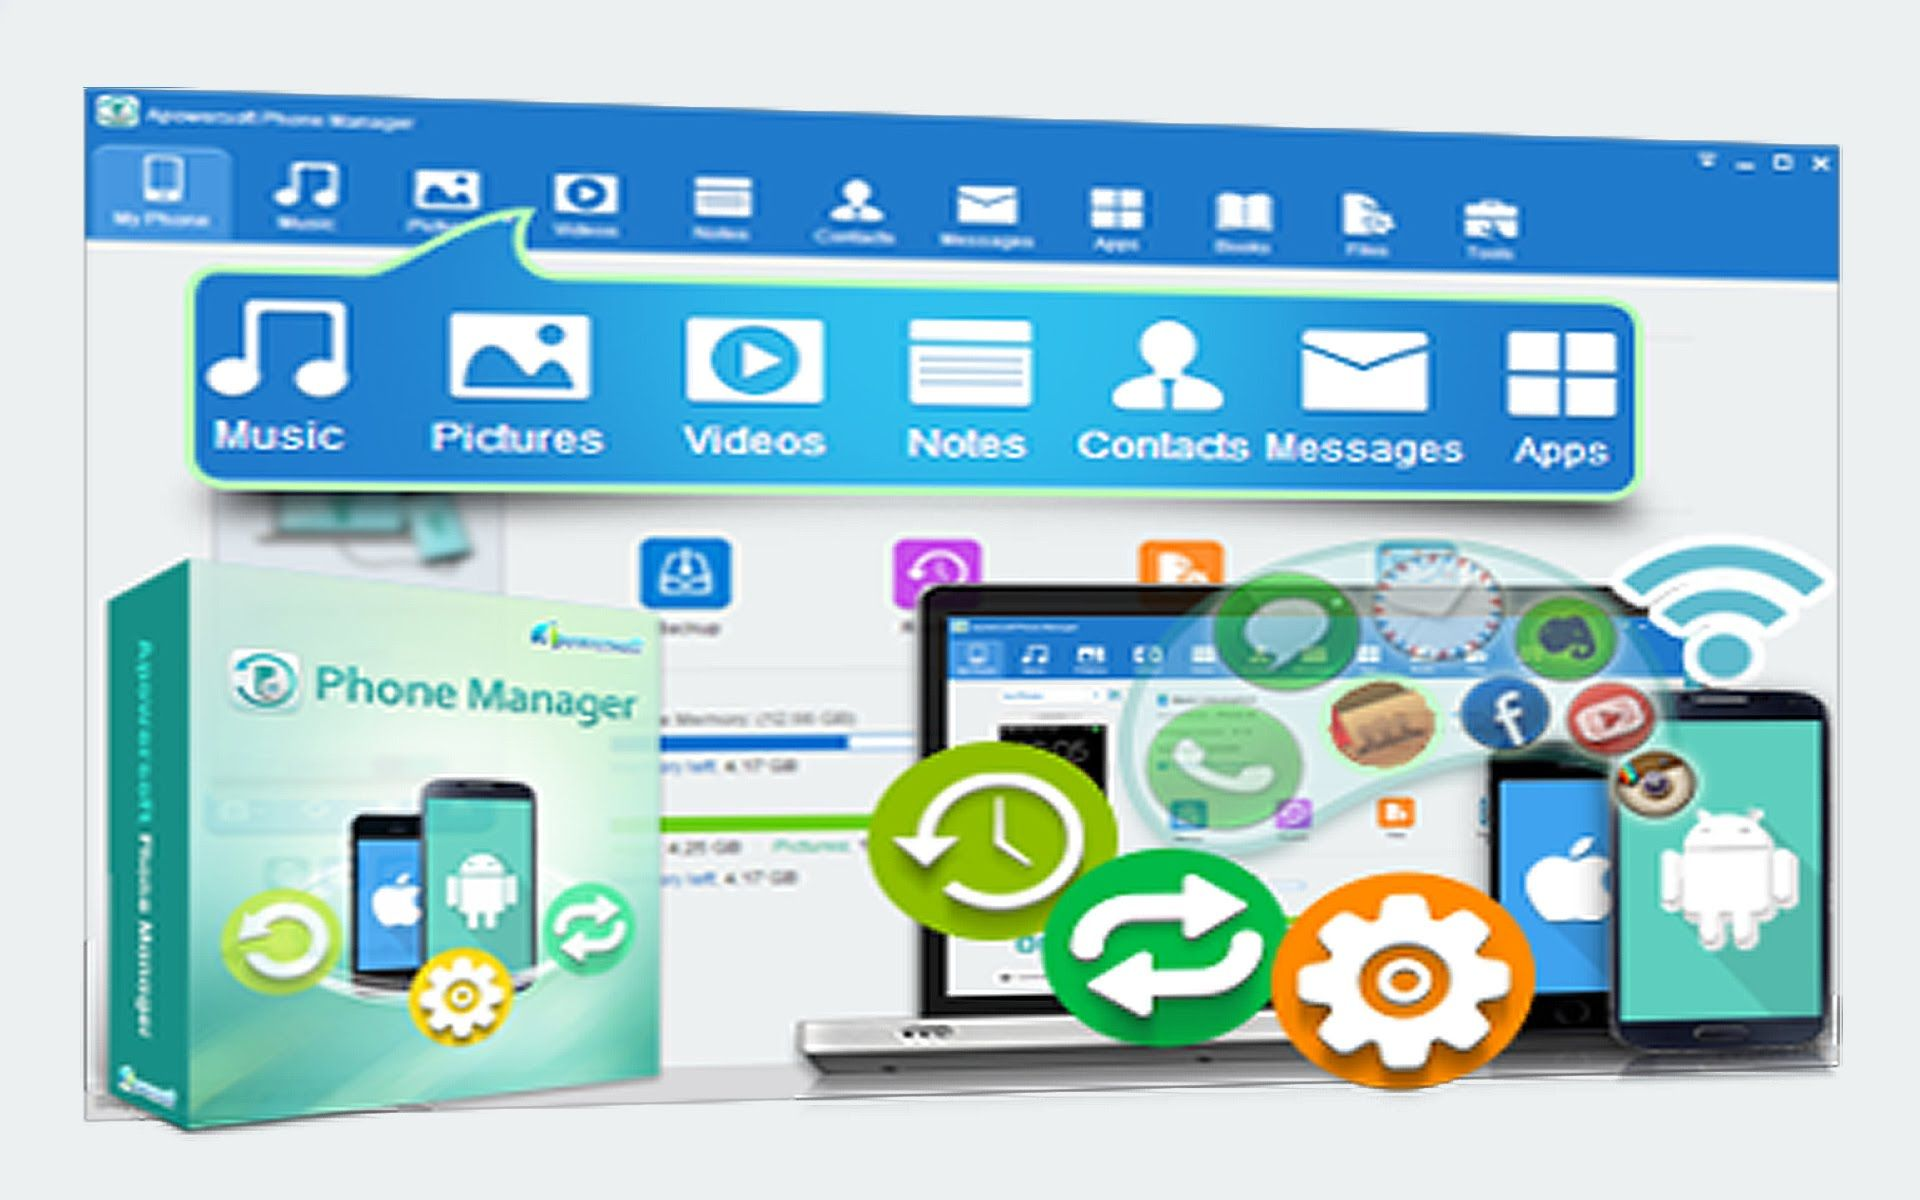 Apowersoft phone manager pro 2 8 4 crack full download